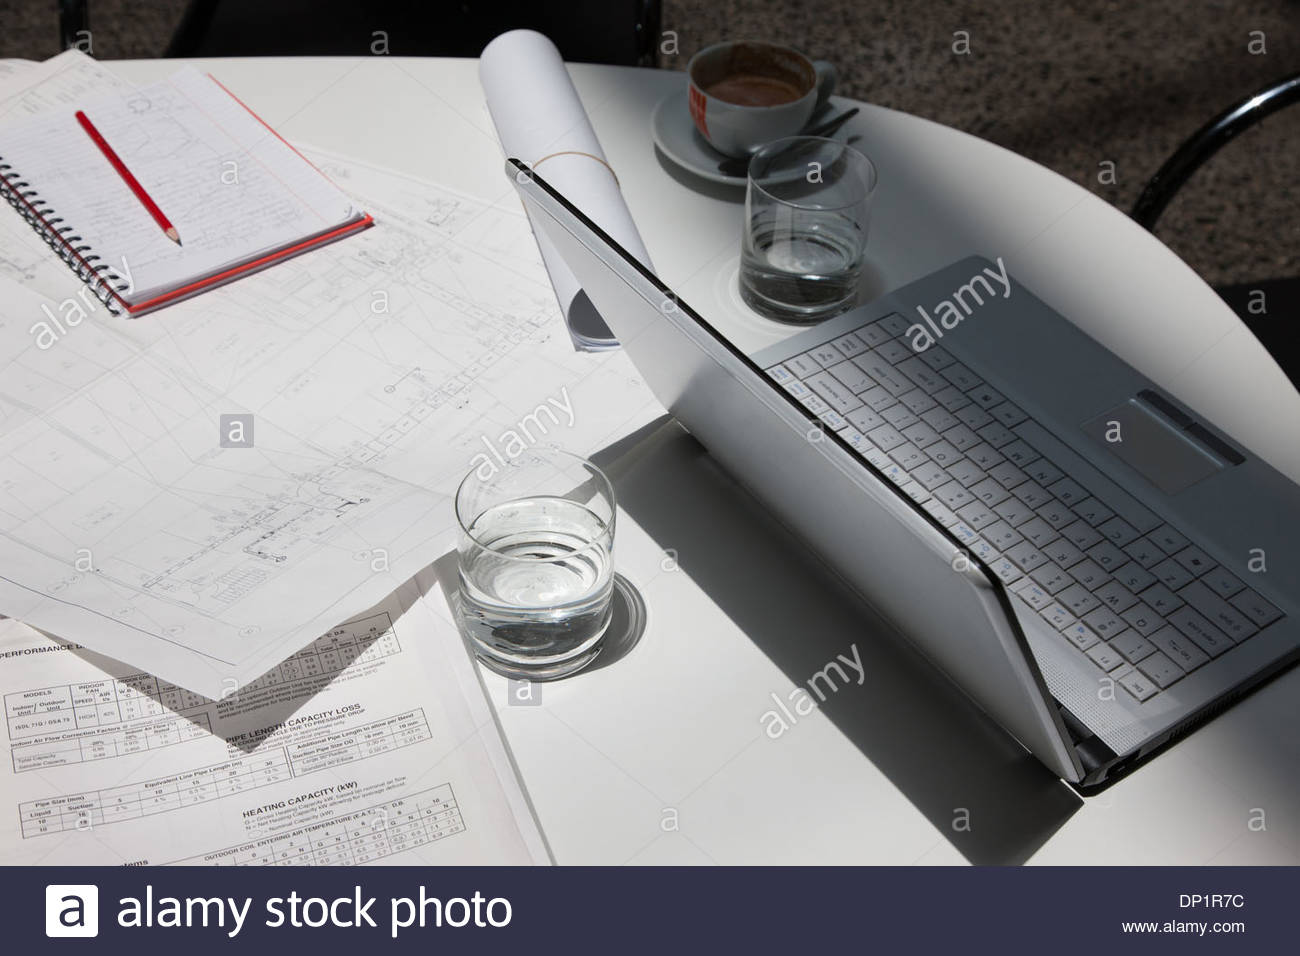 Directement au-dessus de la paperasse, du café, des ordinateurs portables et notebooks on conference table Photo Stock